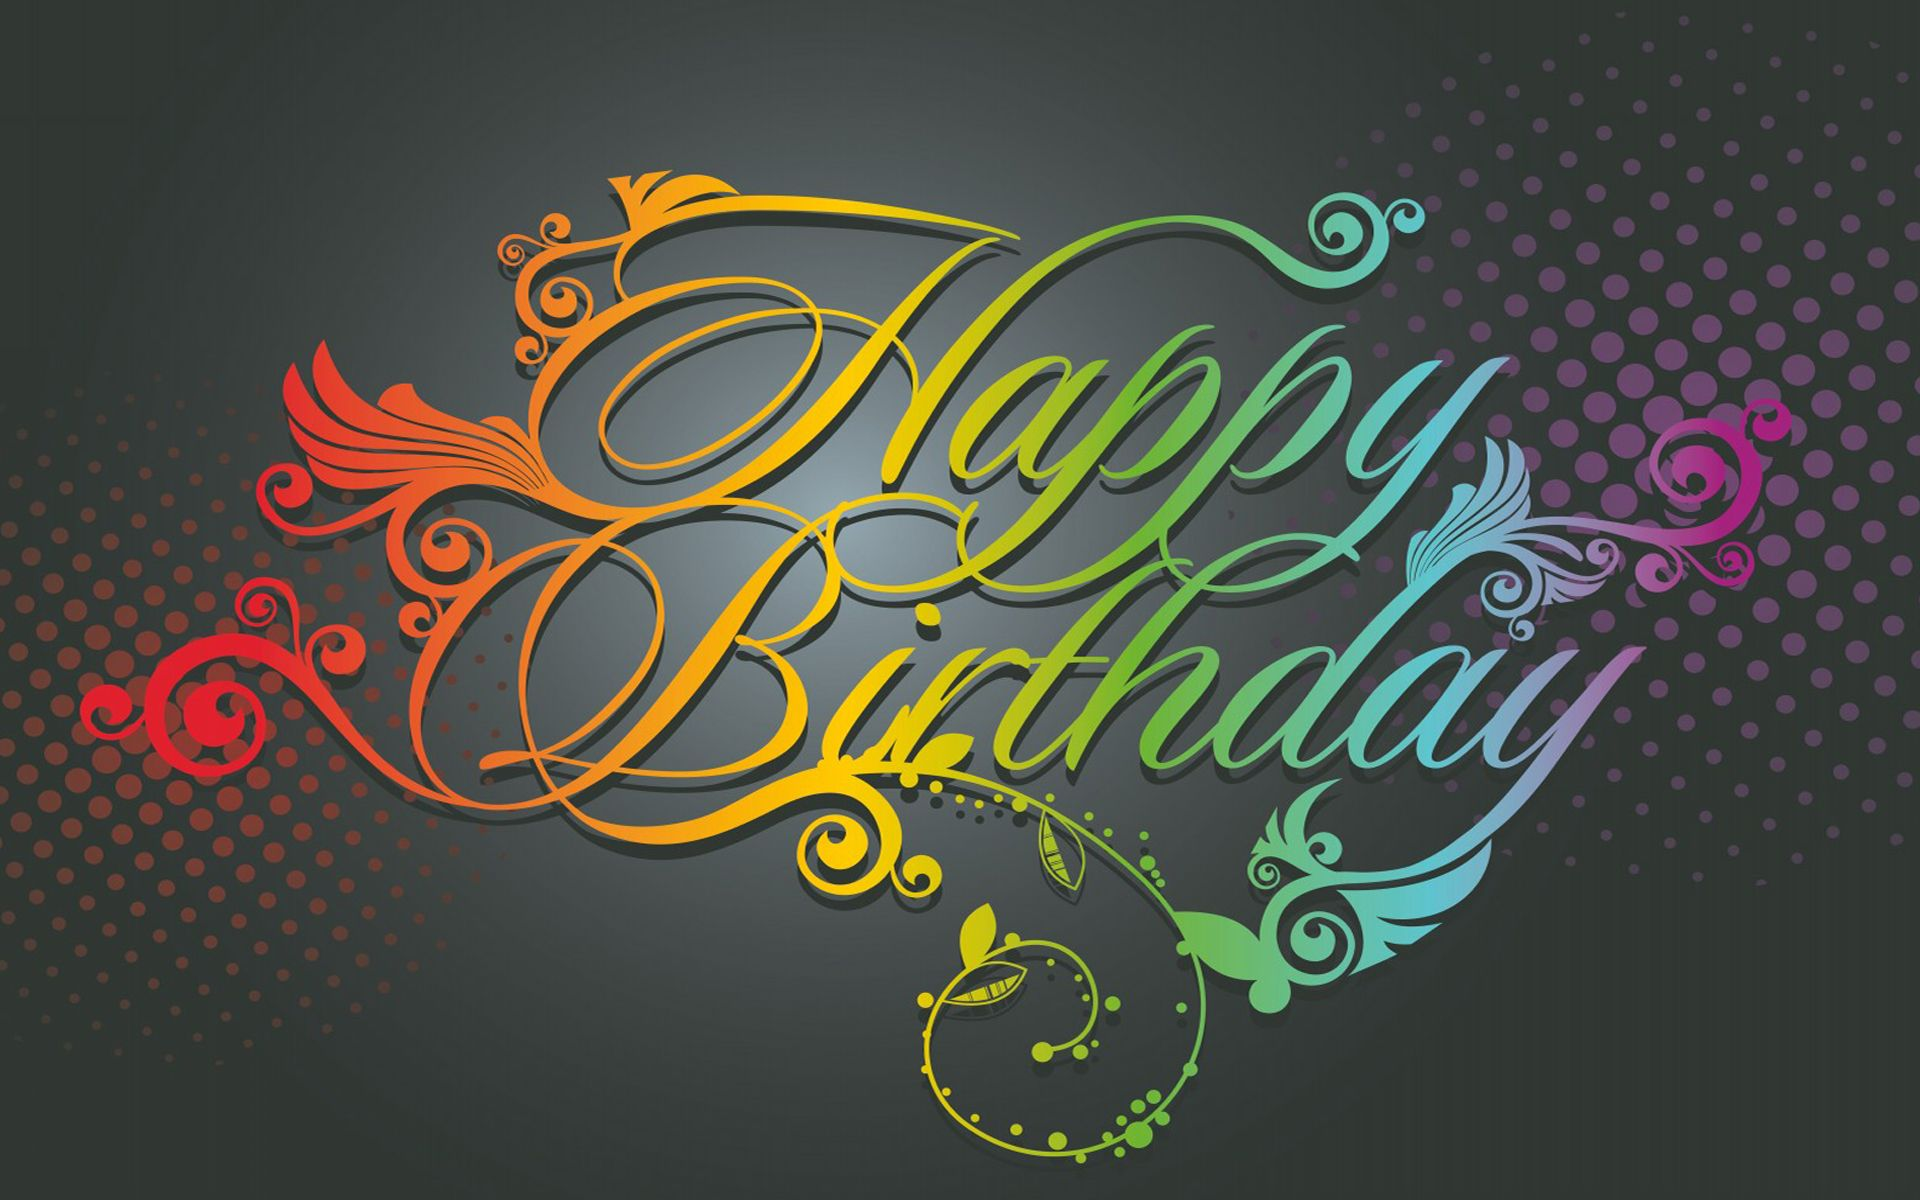 Happy Birthday Wallpaper HD  Wallpapers, Backgrounds, Images, Art ...  Birt...